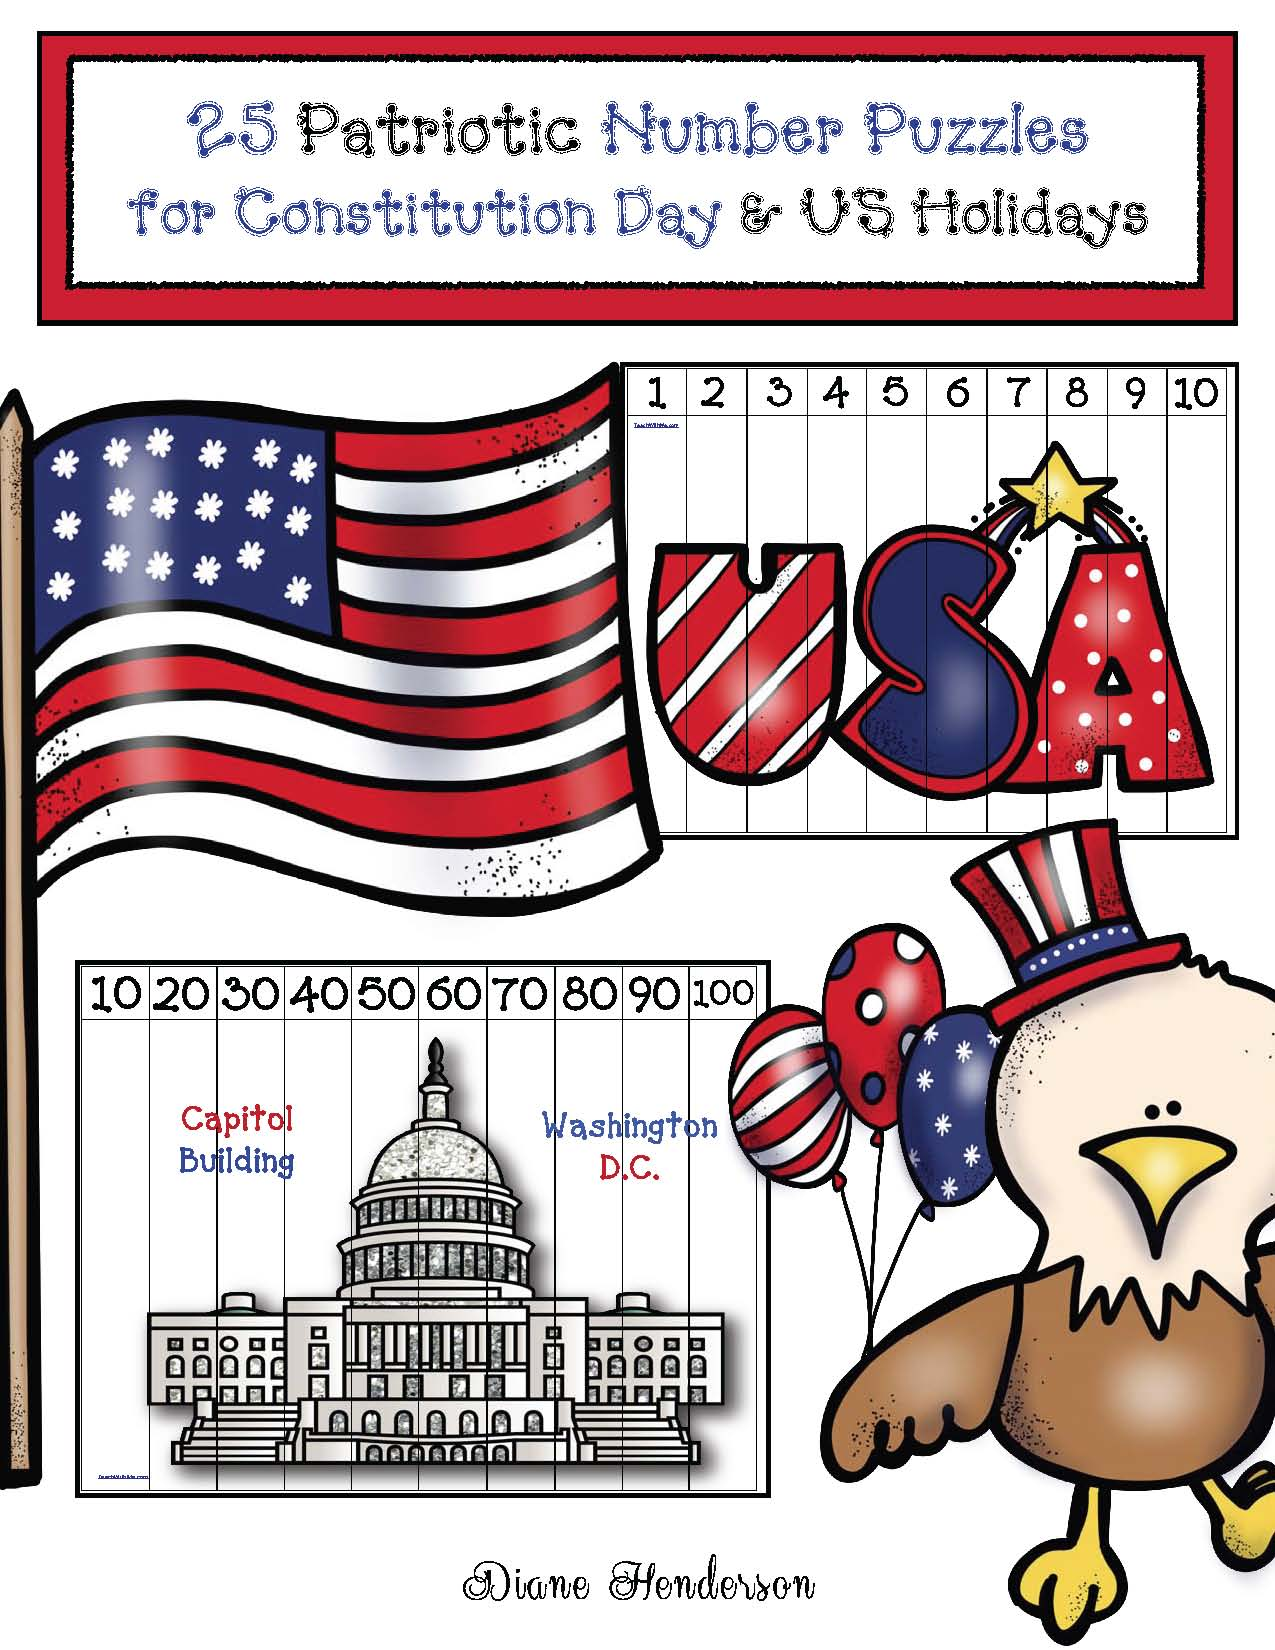 25 patriotic number puzzles for constitution day, constitution day activities, patriotic holiday activities, number puzzles, constitution day bulletin boards,